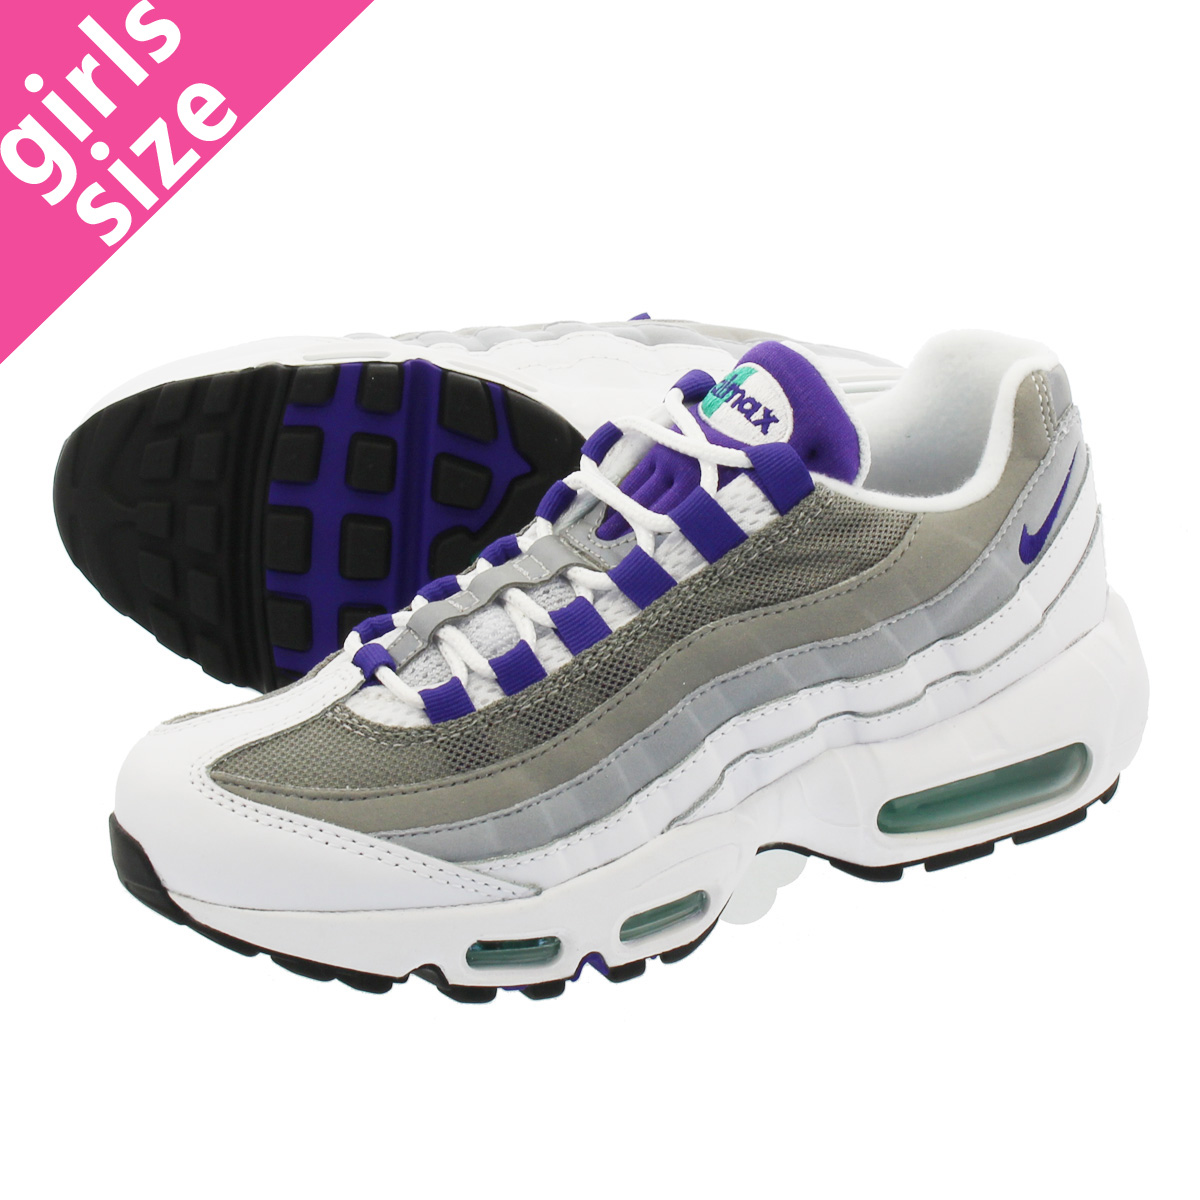 brand new 2ad94 0a5a4 LOWTEX PLUS  NIKE WMNS AIR MAX 95 Nike women Air Max 95 WHITE COURT PURPLE EMERALD  GREEN WOLF GREY 307960-109-l   Rakuten Global Market